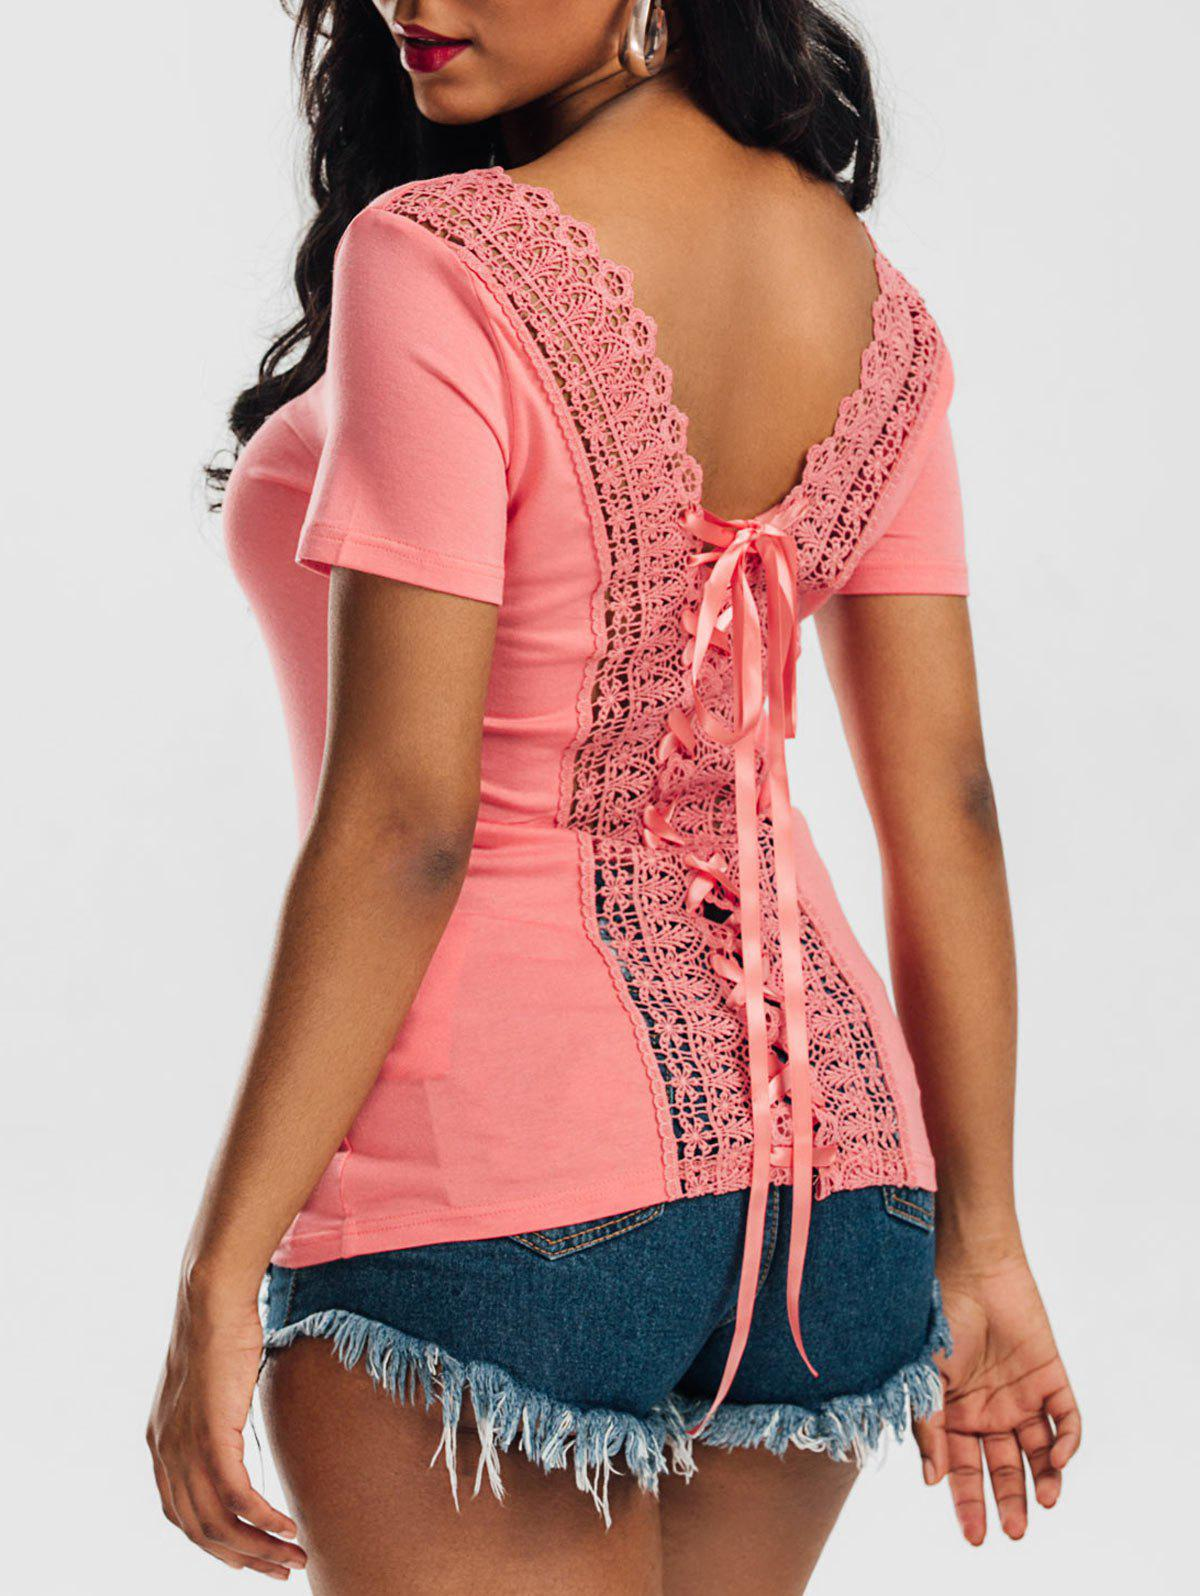 Hot Laced Lace-up Top